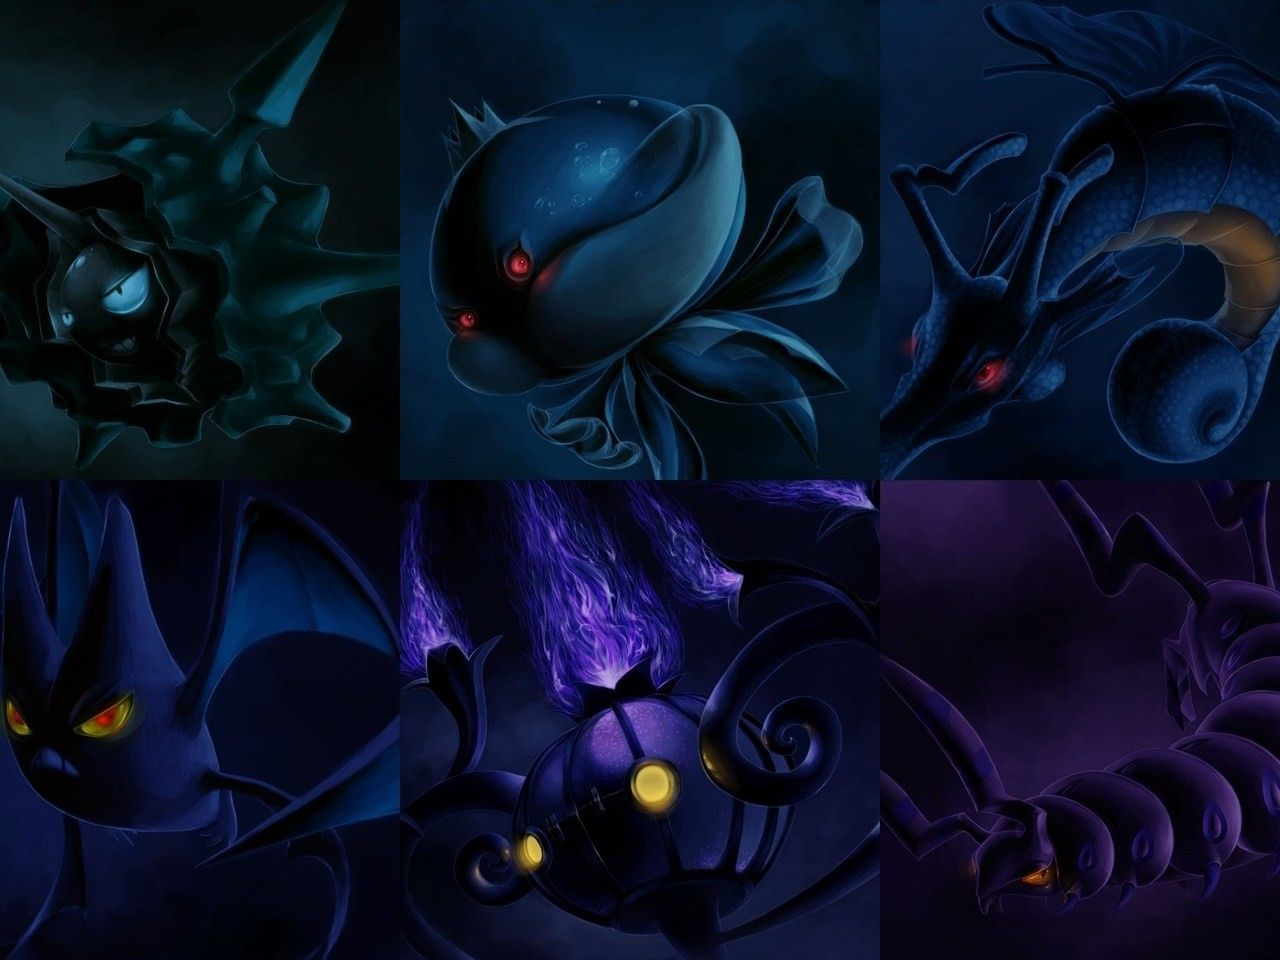 Cloyster jellicent kingdra crobat chandelier scolipede cloyster jellicent kingdra crobat chandelier scolipede arubaitofo Images